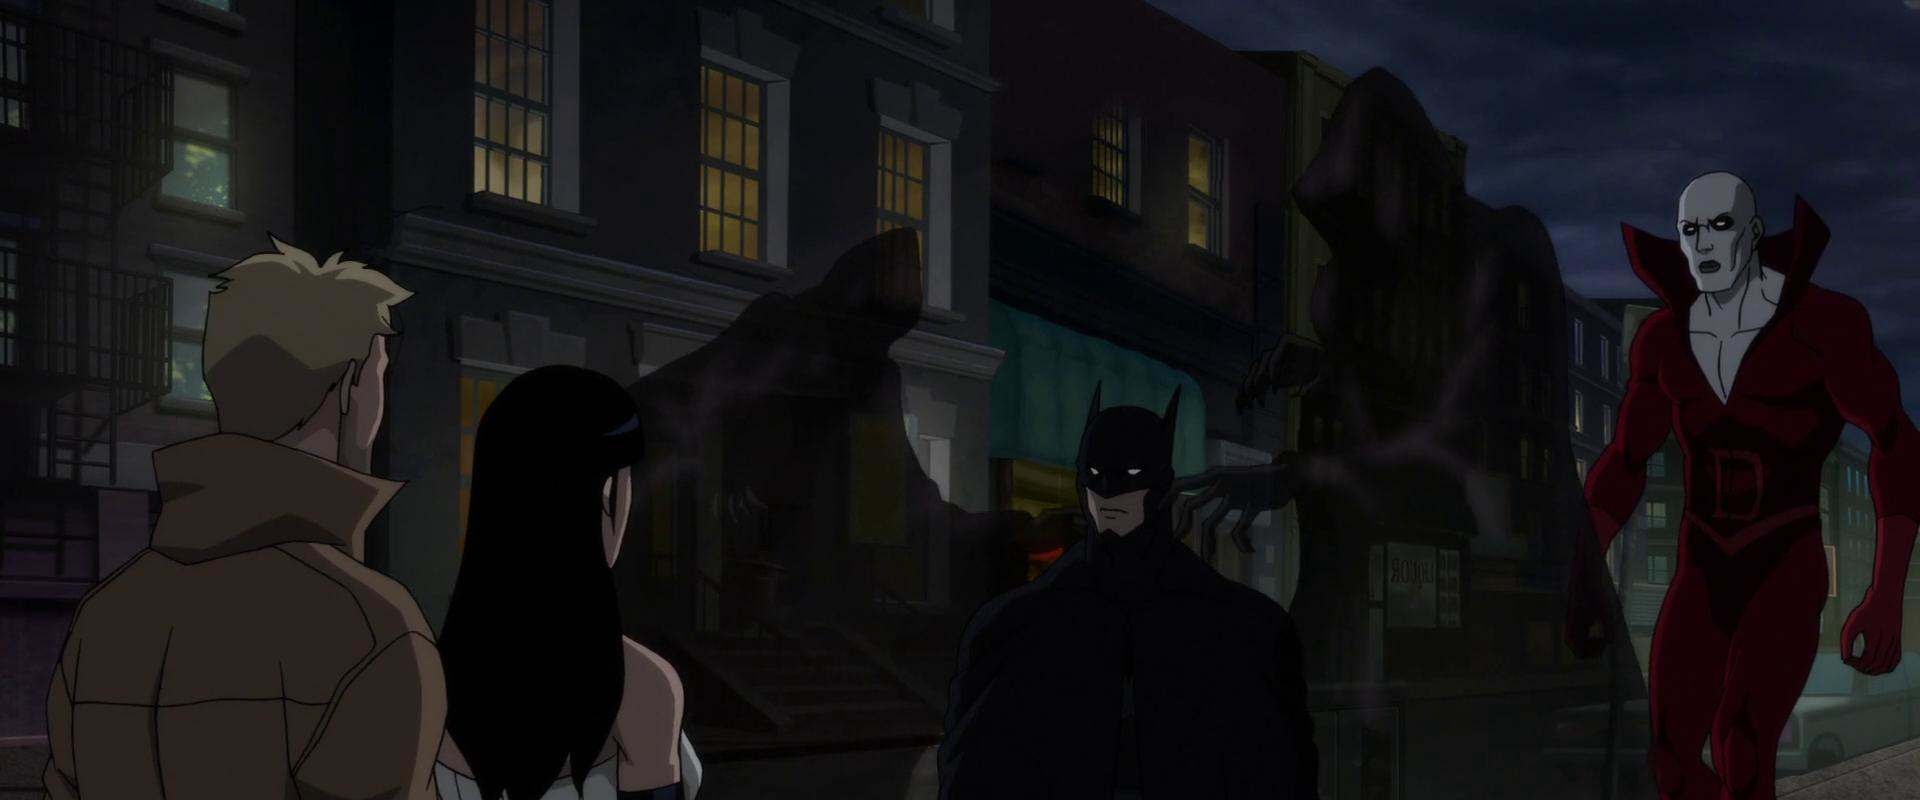 Justice League Dark background 2